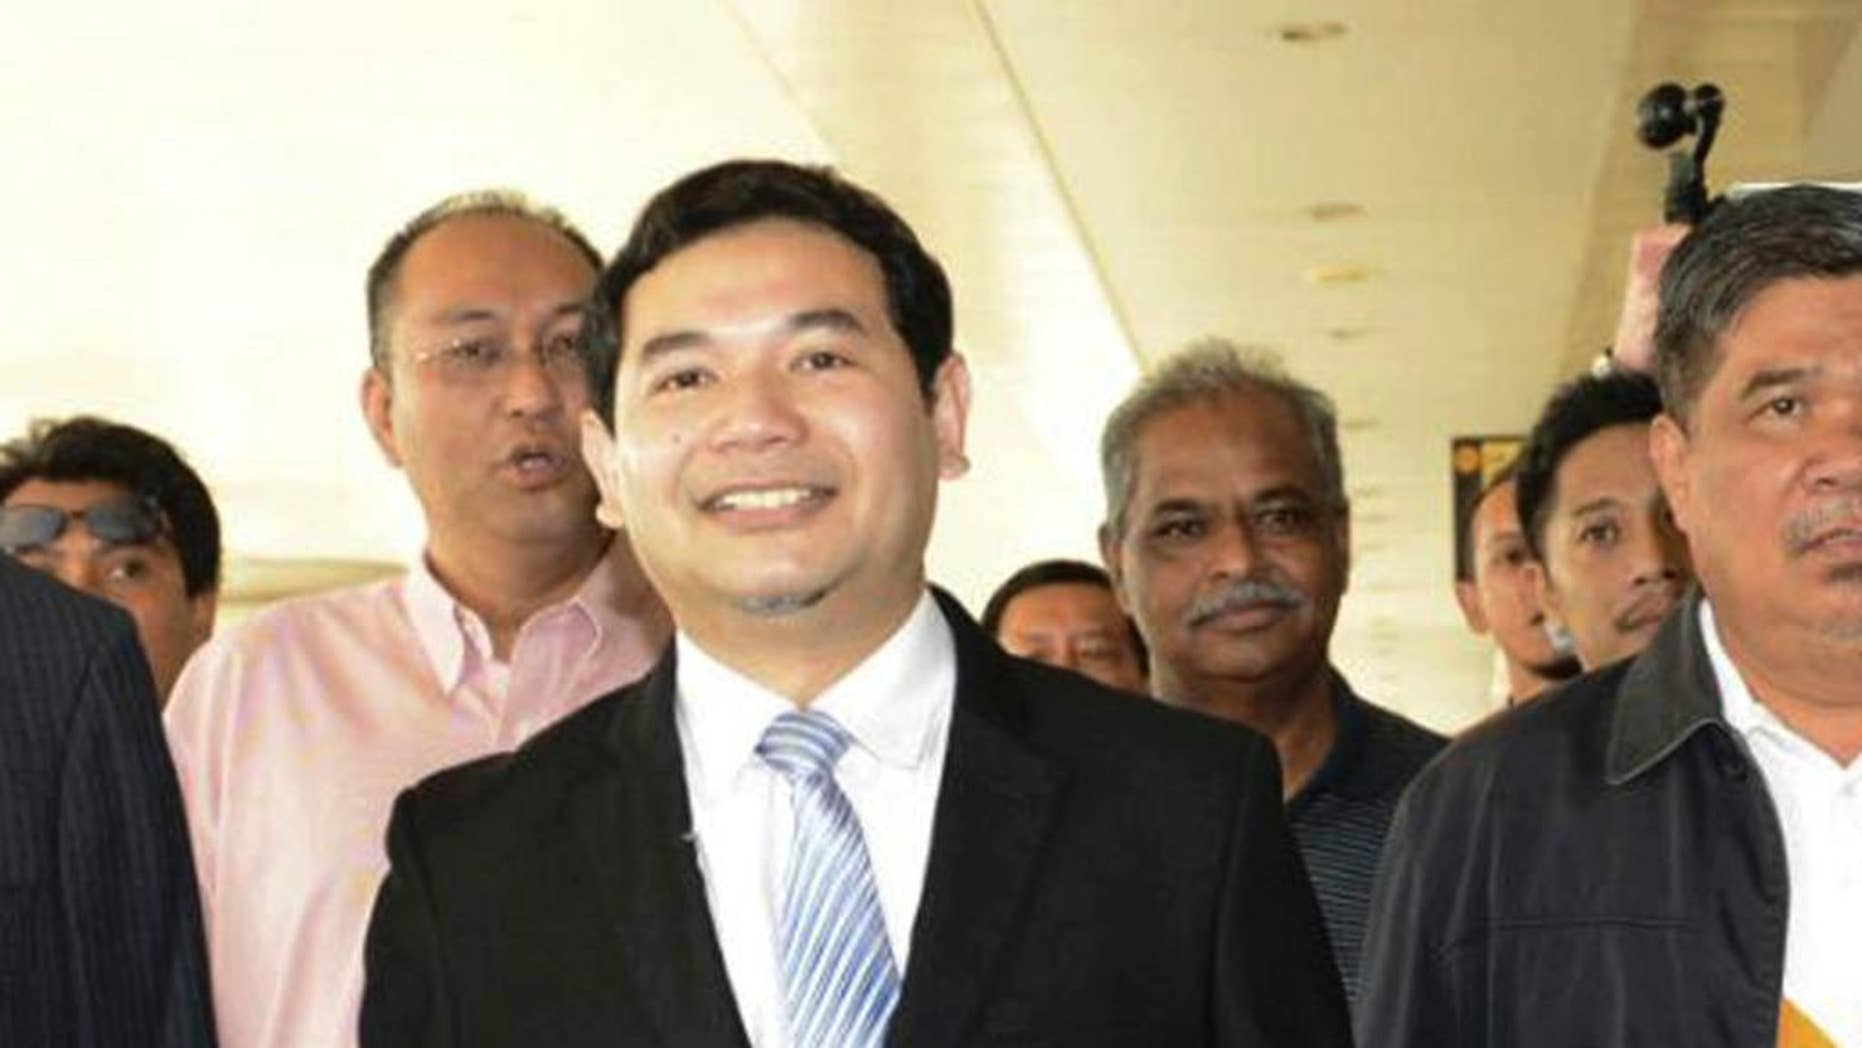 Malaysia's People's Justice Party Vice President Rafizi Ramli arrives at court in Kuala Lumpur, Malaysia, Monday, Nov. 14, 2016. The prominent Malaysian opposition lawmaker, who has a reputation as a whistle blower, has been sentenced to 18 months in jail for releasing a classified document on a controversial state investment fund, founded by Prime Minister Najib Razak. (AP Photo)